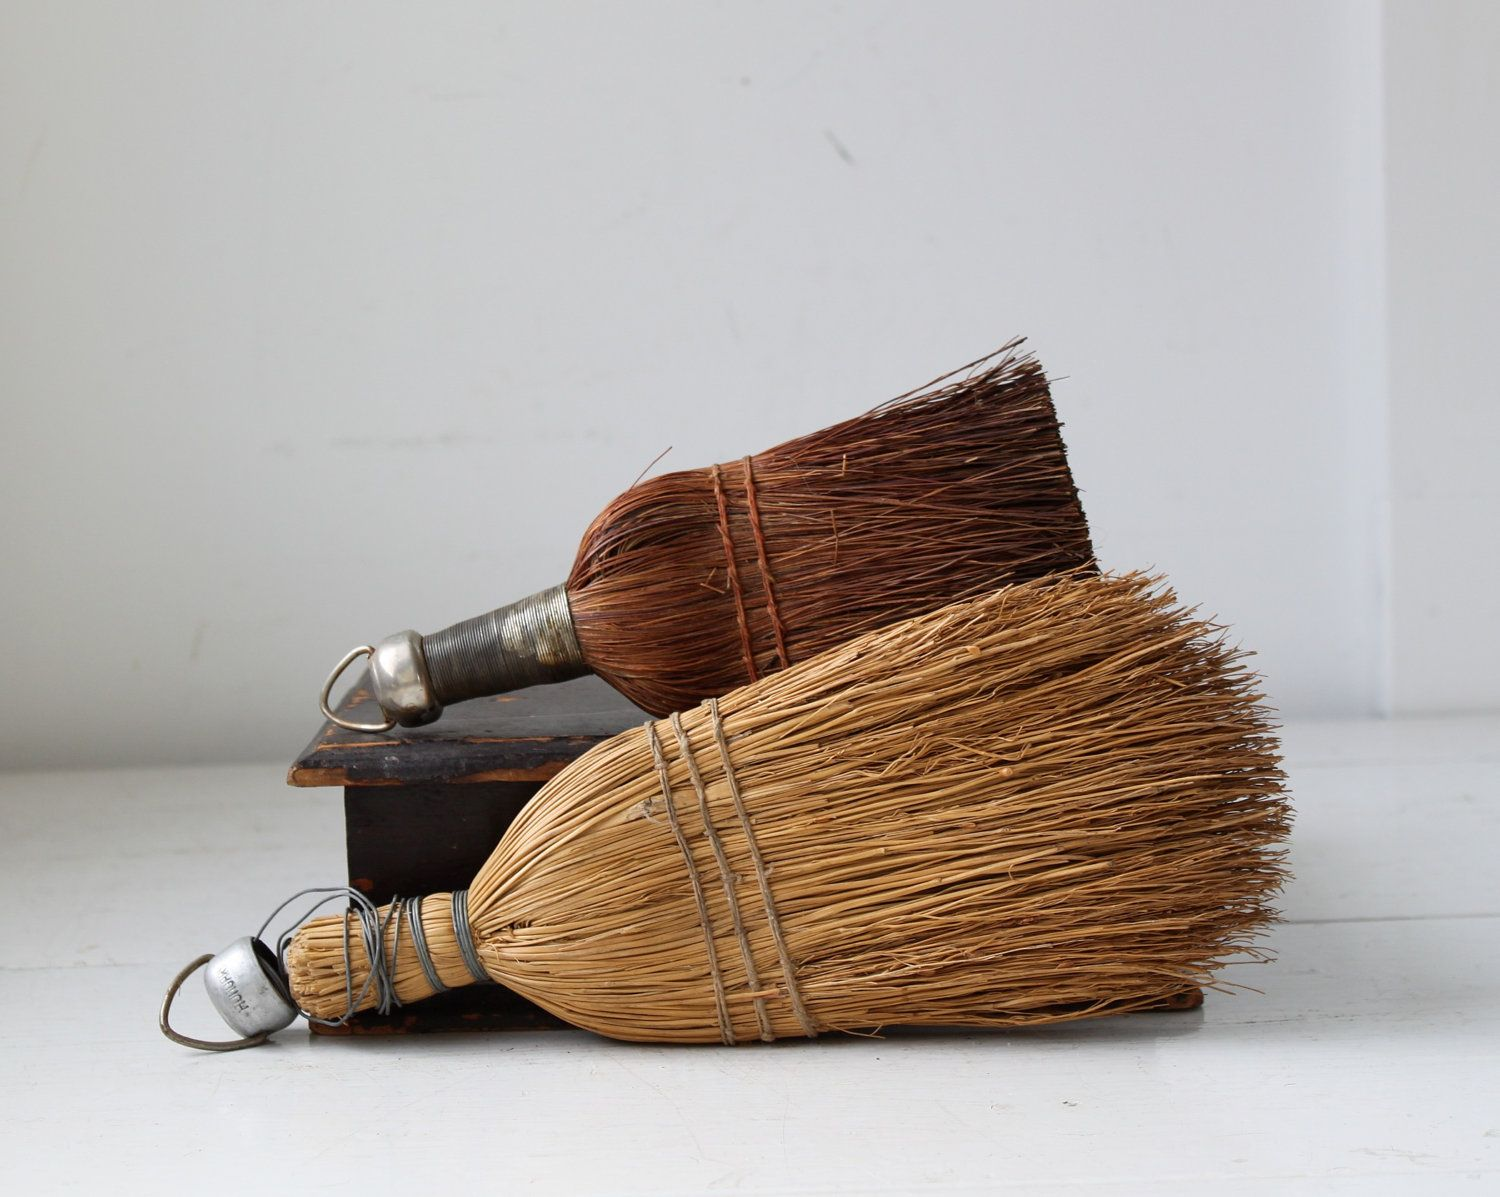 These old-fashioned whisk brooms beat the pants off of ugly